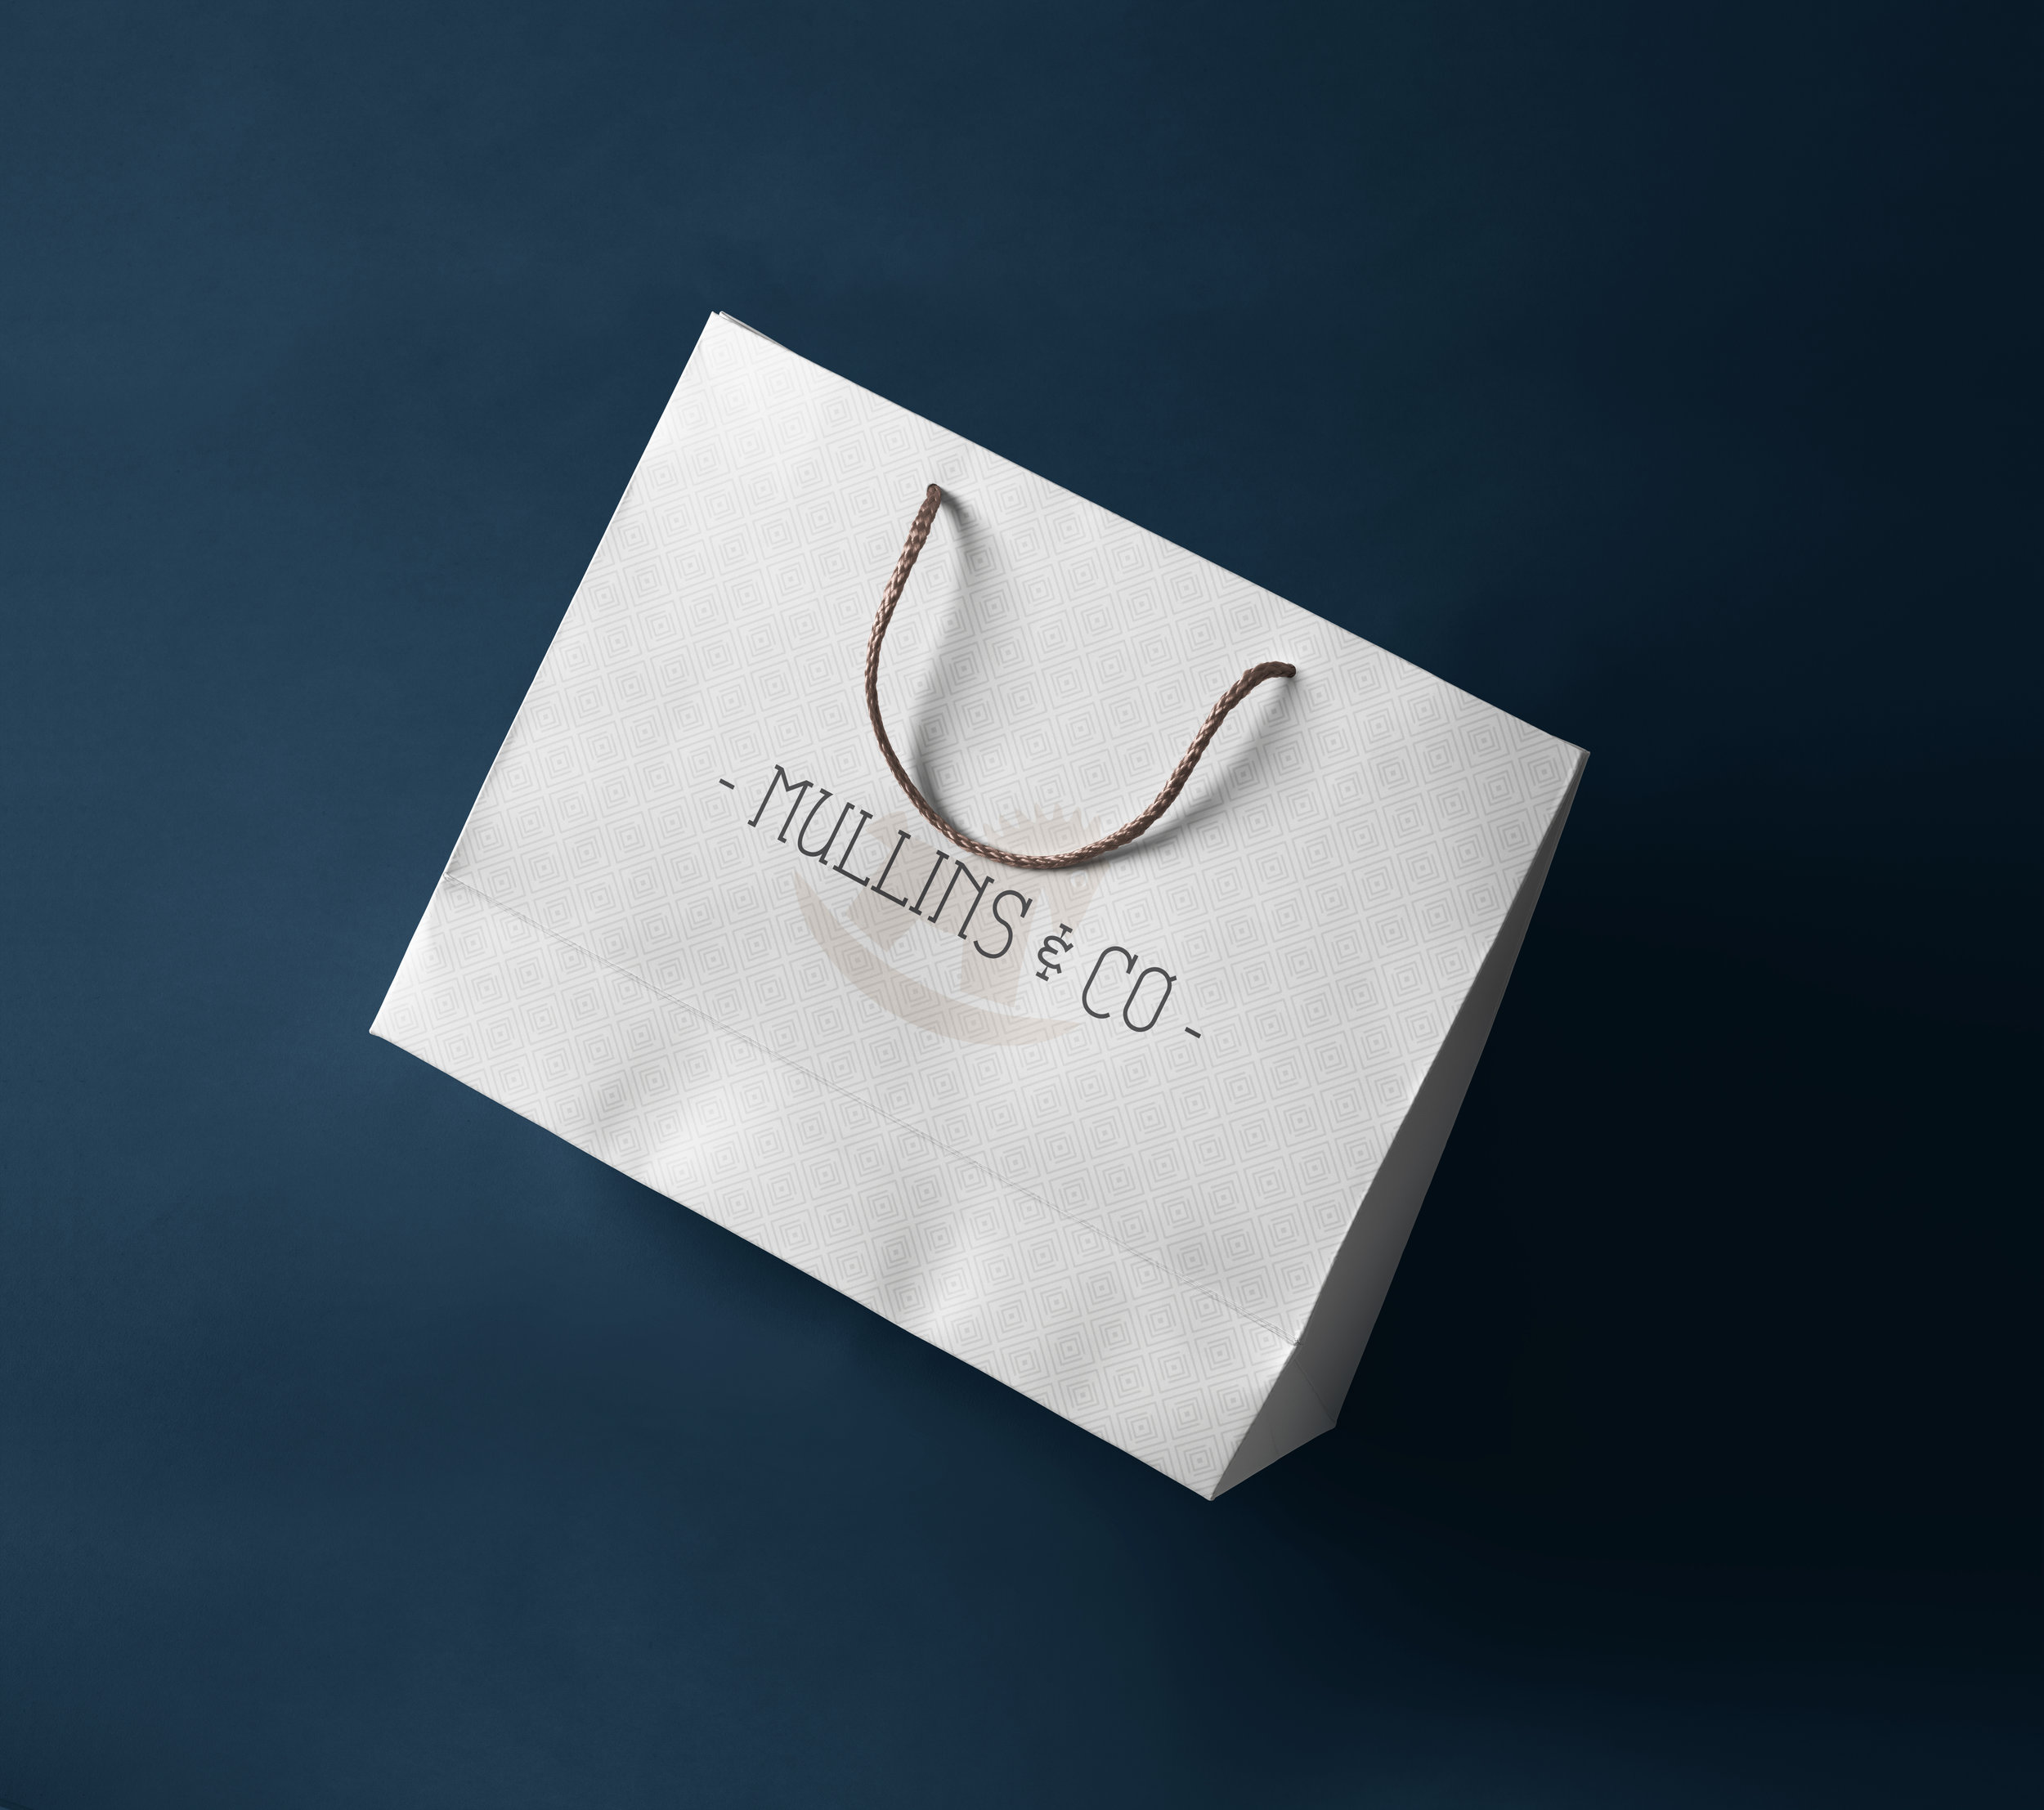 Shopping-Bag-Mockup-Vol6-mullins.jpg